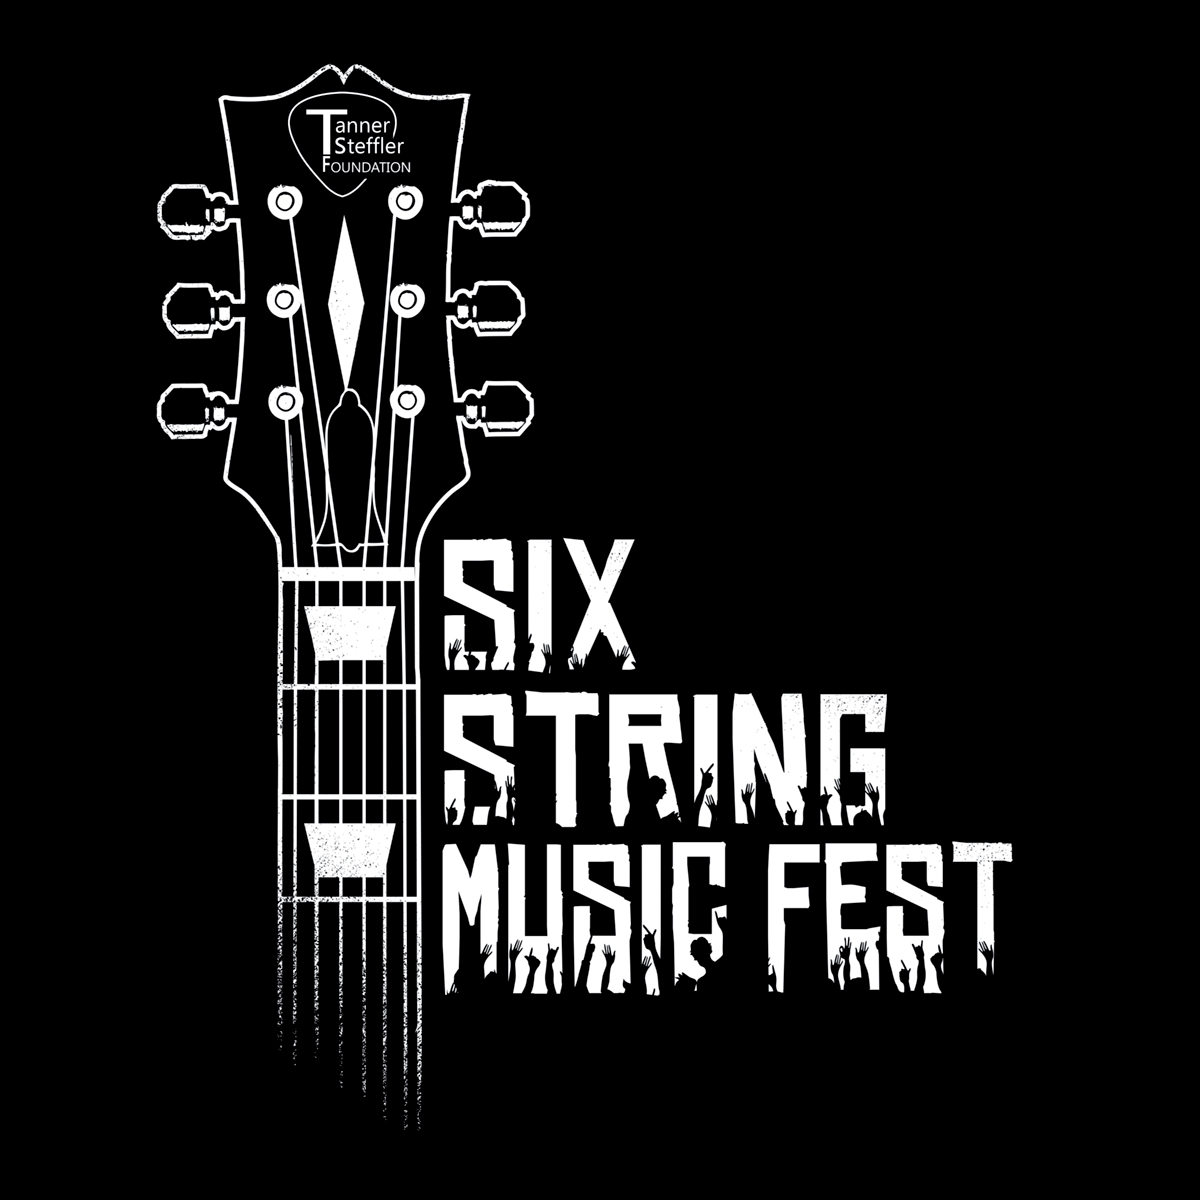 Six-String Music Fest